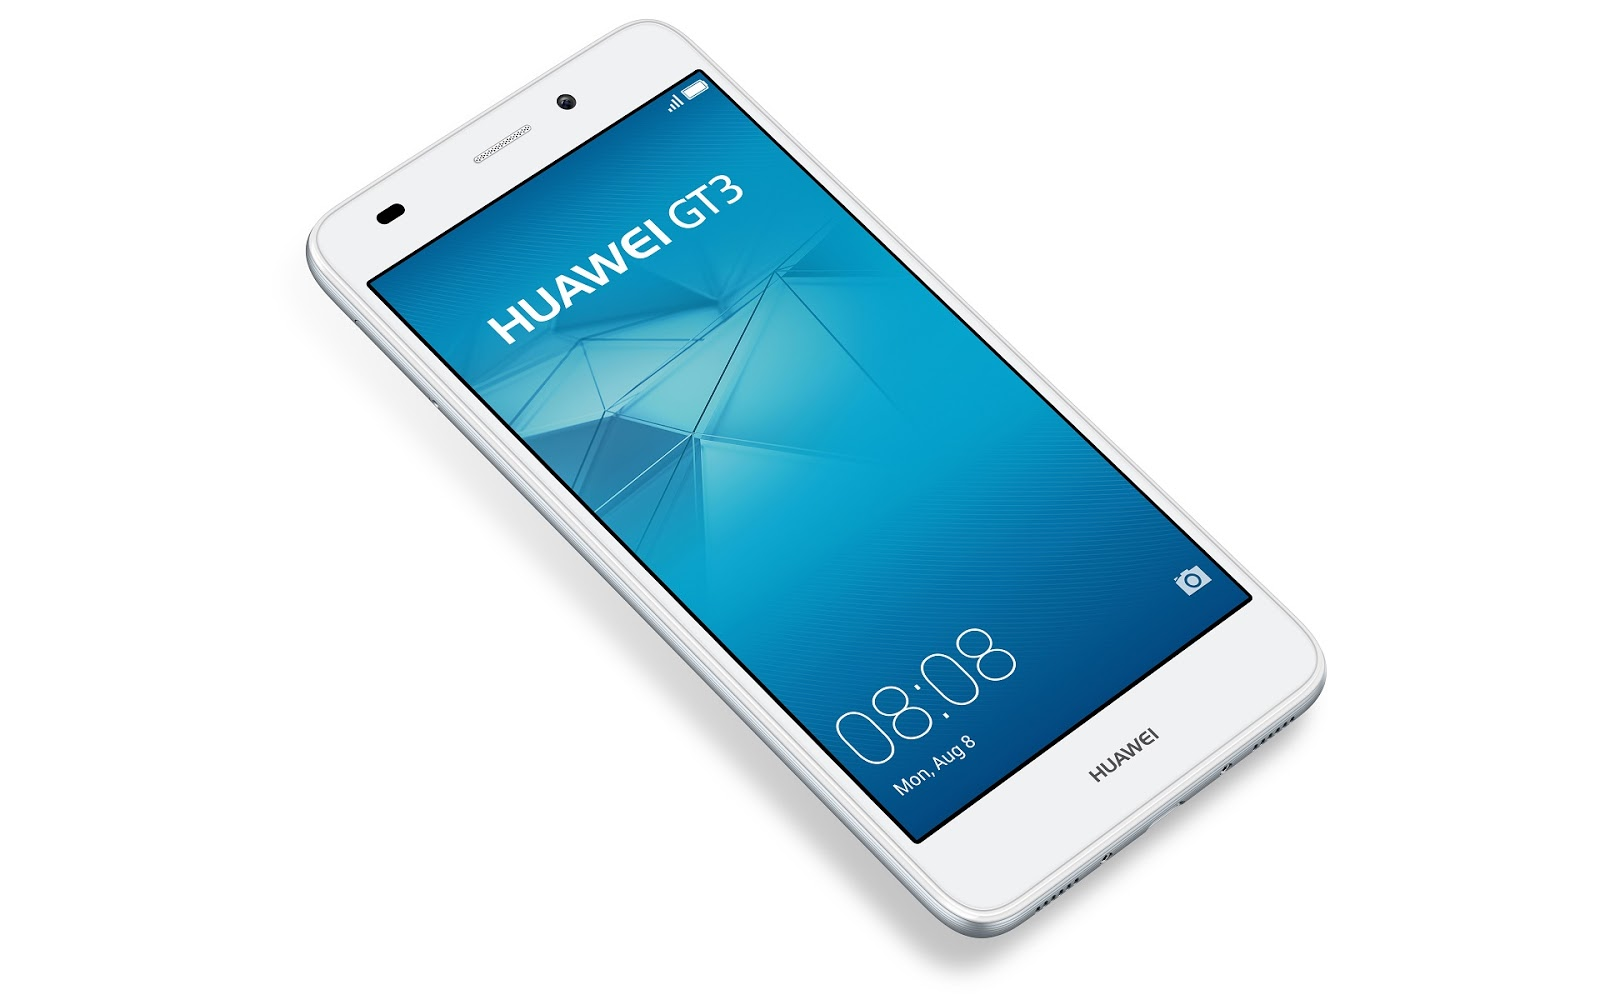 Huawei GT3 come condividere video e foto su facebook, WhatsApp, e-mail e social